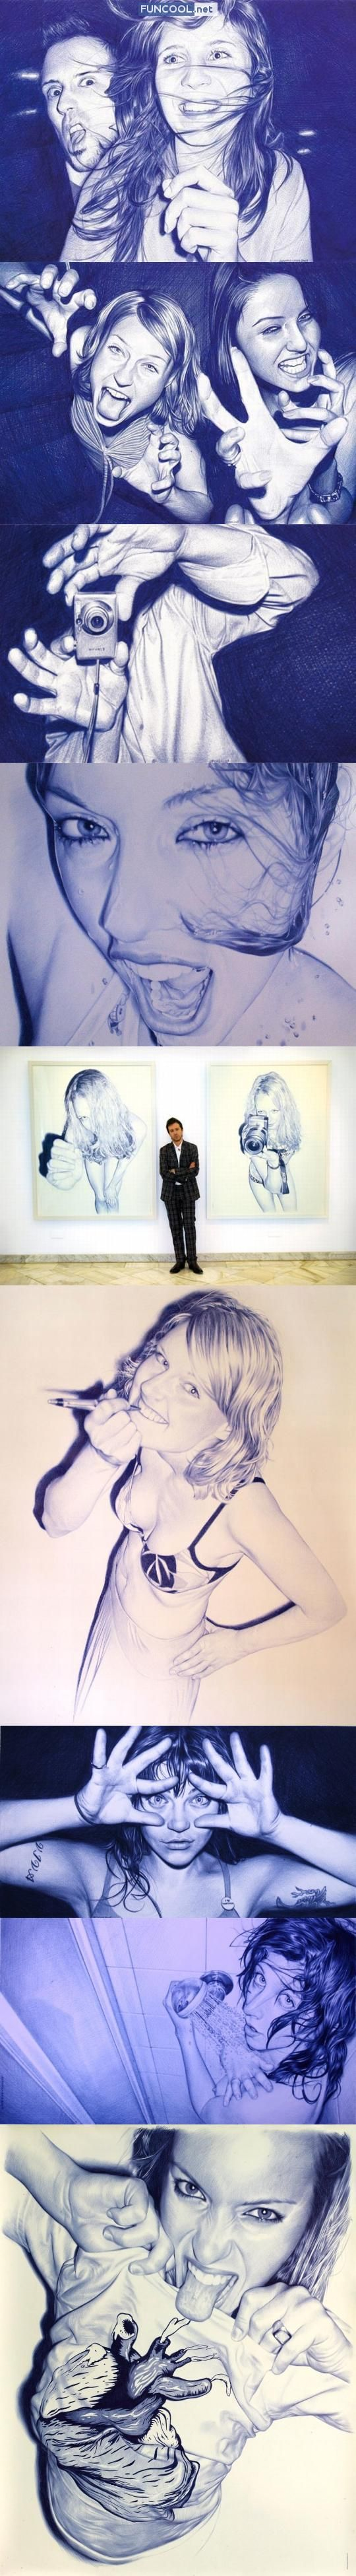 Juan Francisco Casas is a painter who uses a bic pen to create astonishing realistic portraits. Can't believe them!